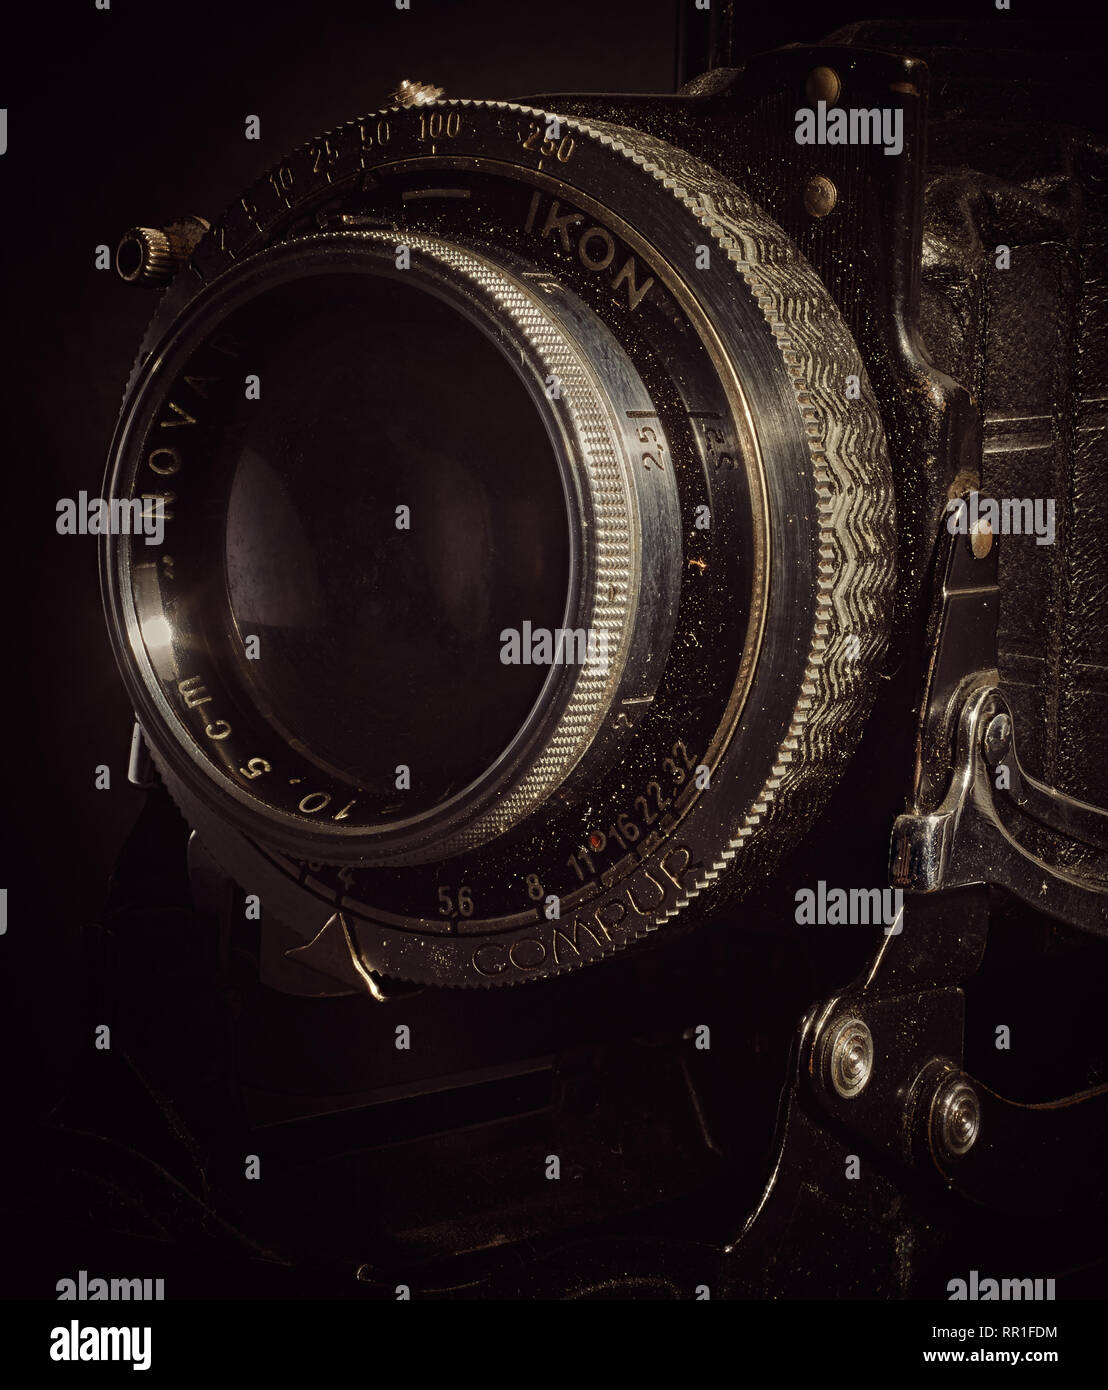 Extreme close up of the lens on a vintage bellows film camera. - Stock Image